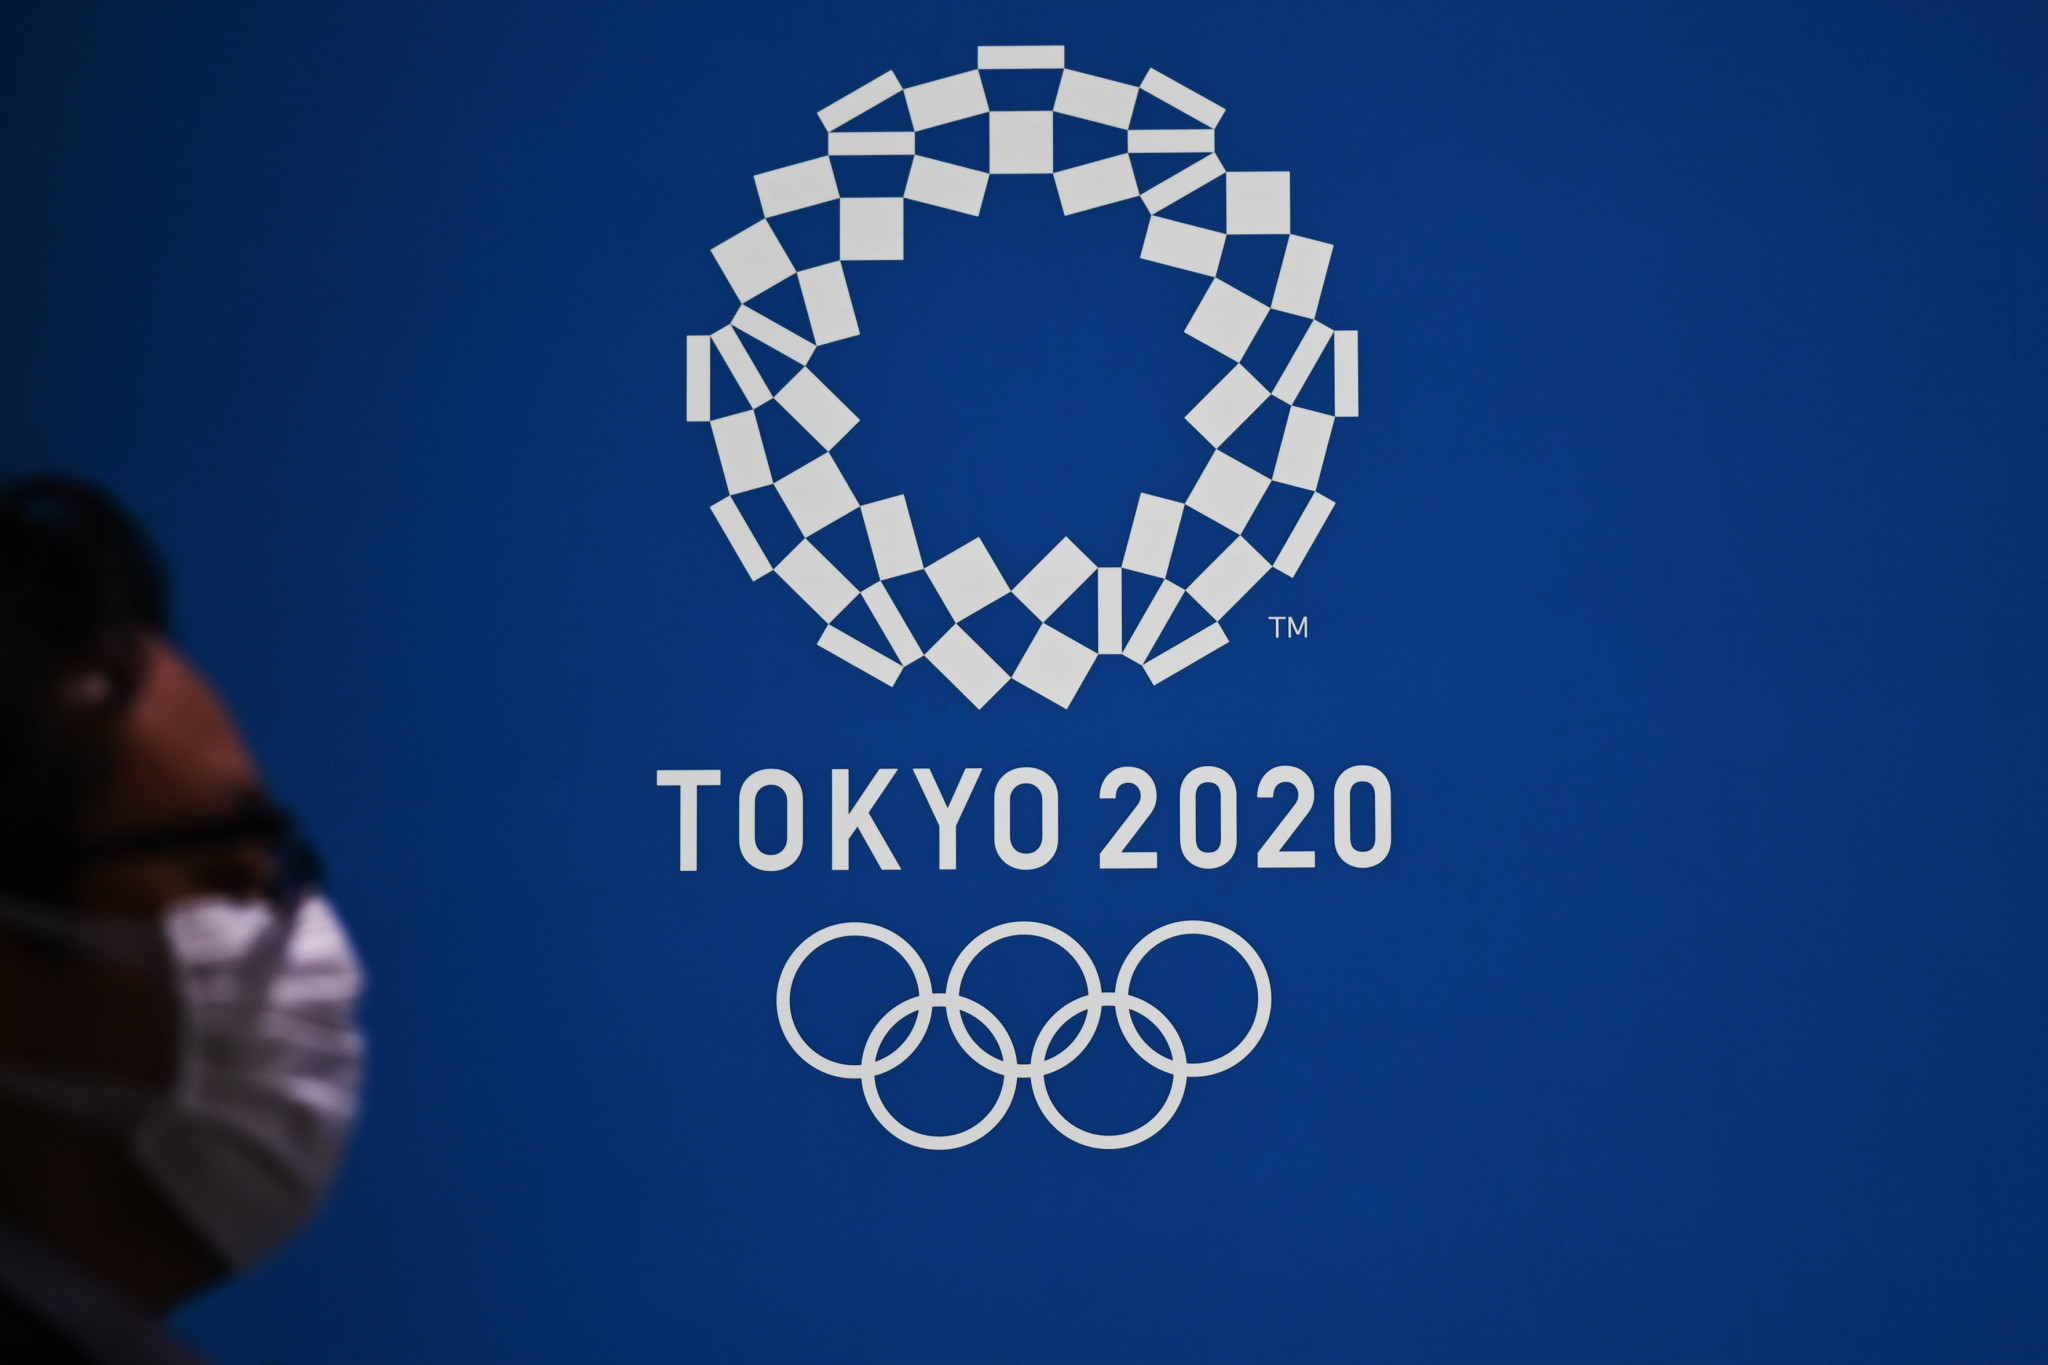 Tokyo 2020 was postponed by a year as a result of the coronavirus pandemic, which brought the sporting world to almost a complete halt ©Getty Images